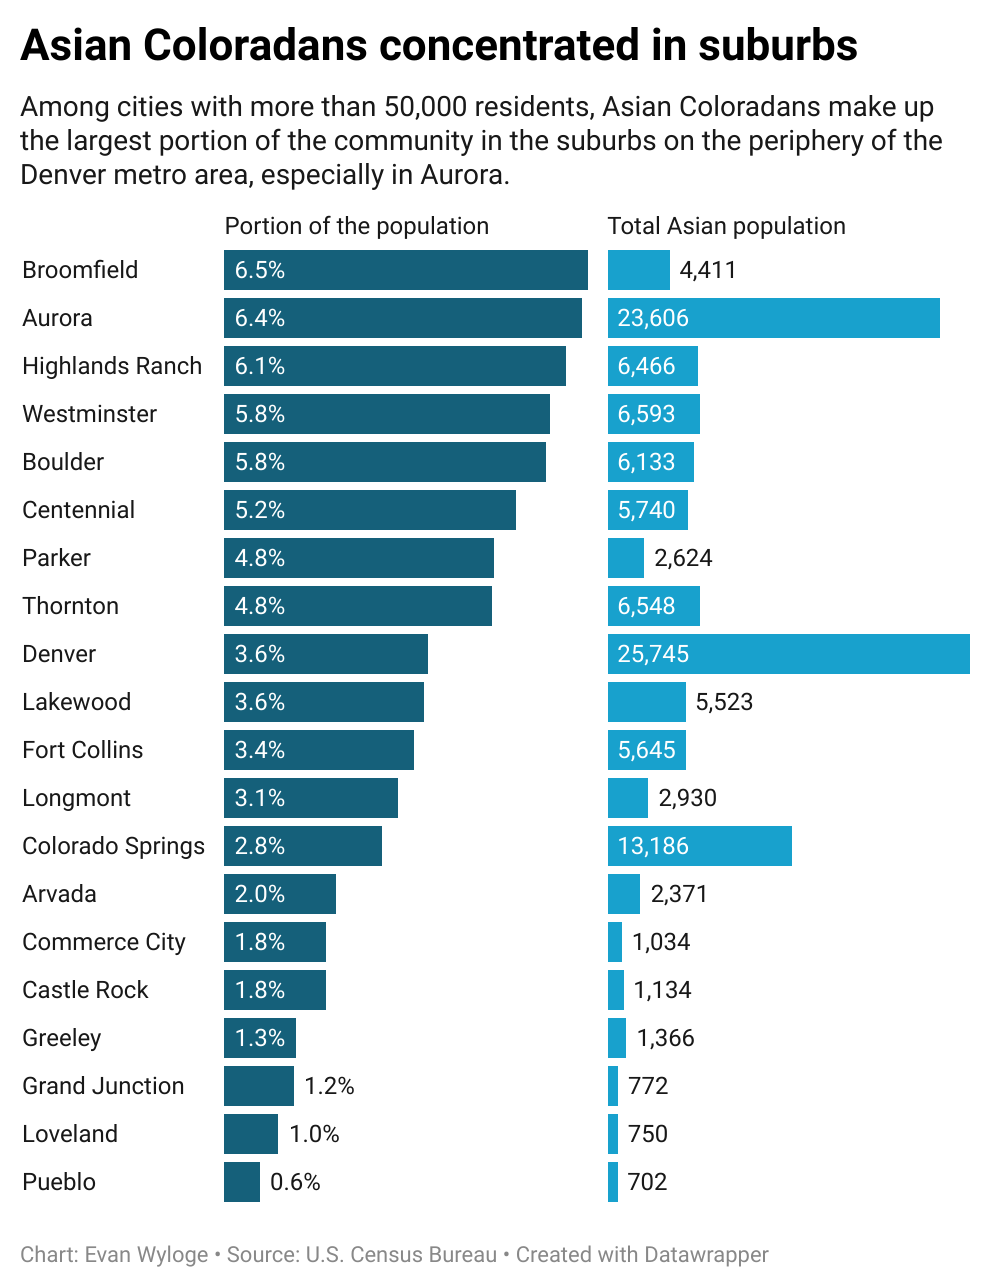 Asian Coloradans Concentrated in Suburbs.png